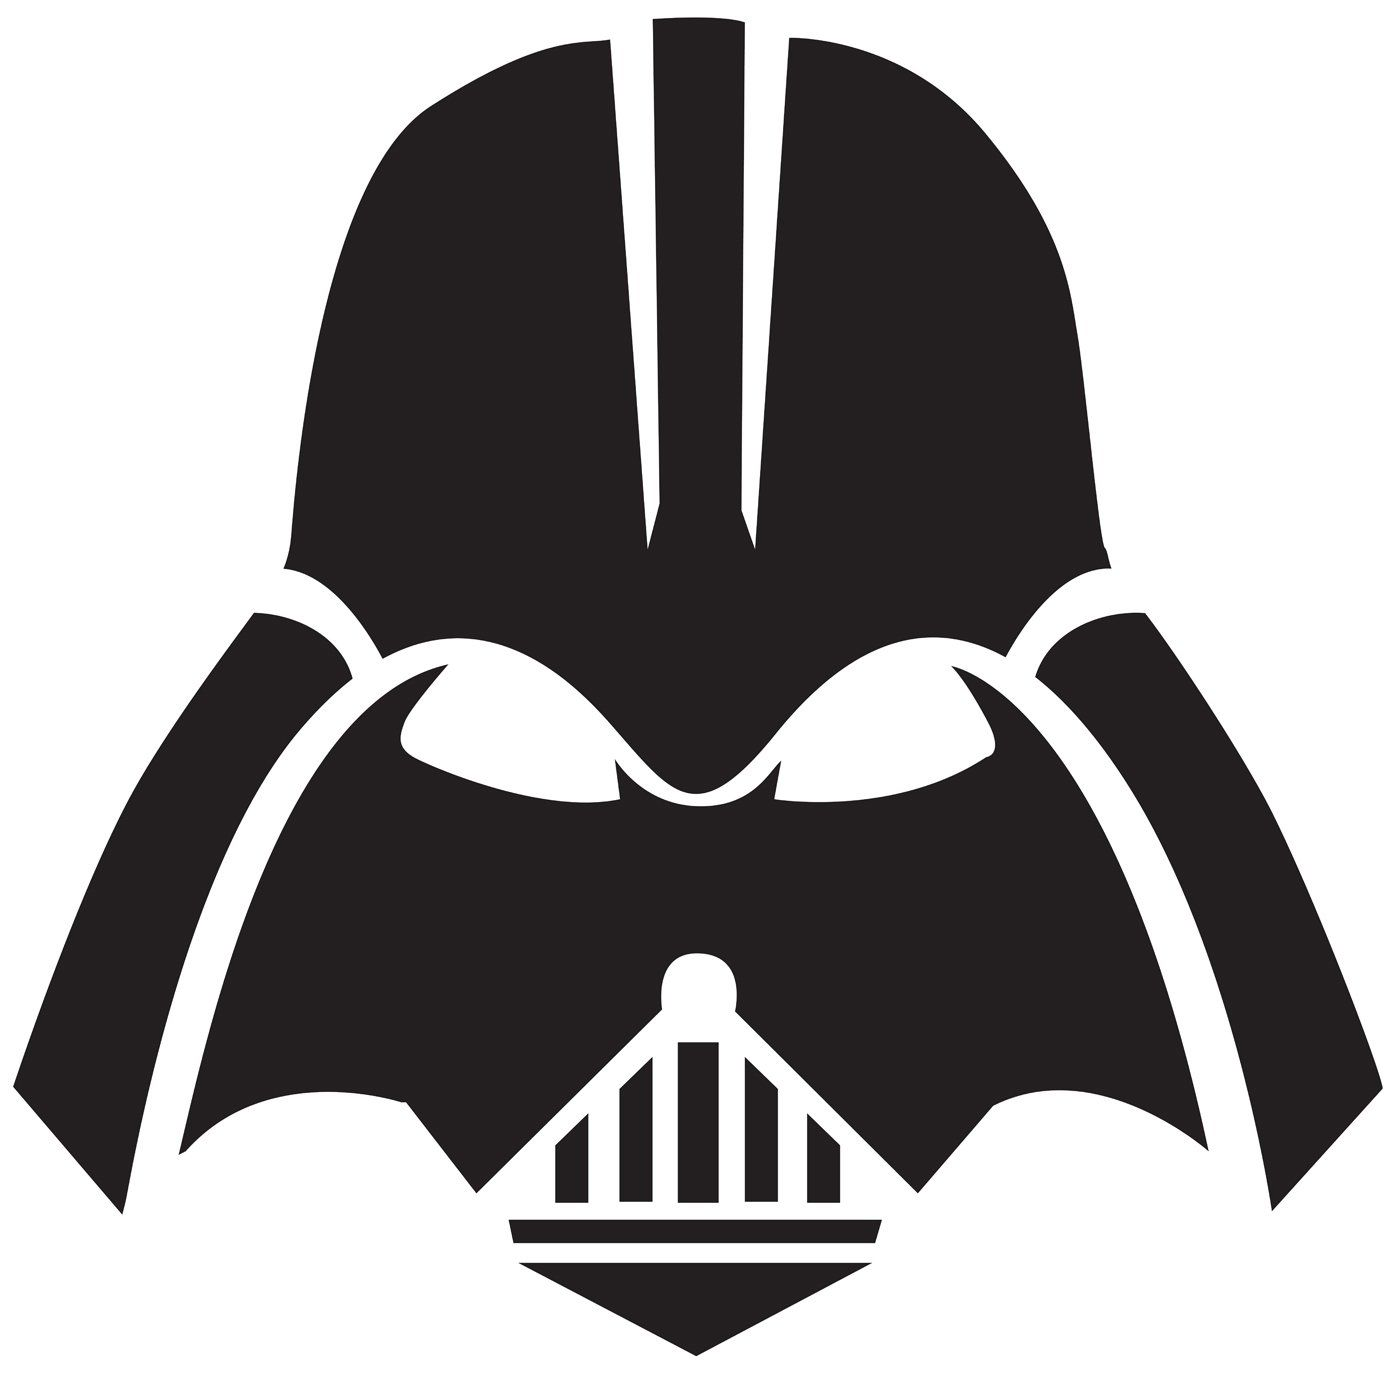 darth vader mask - Pochoir Dark Vador